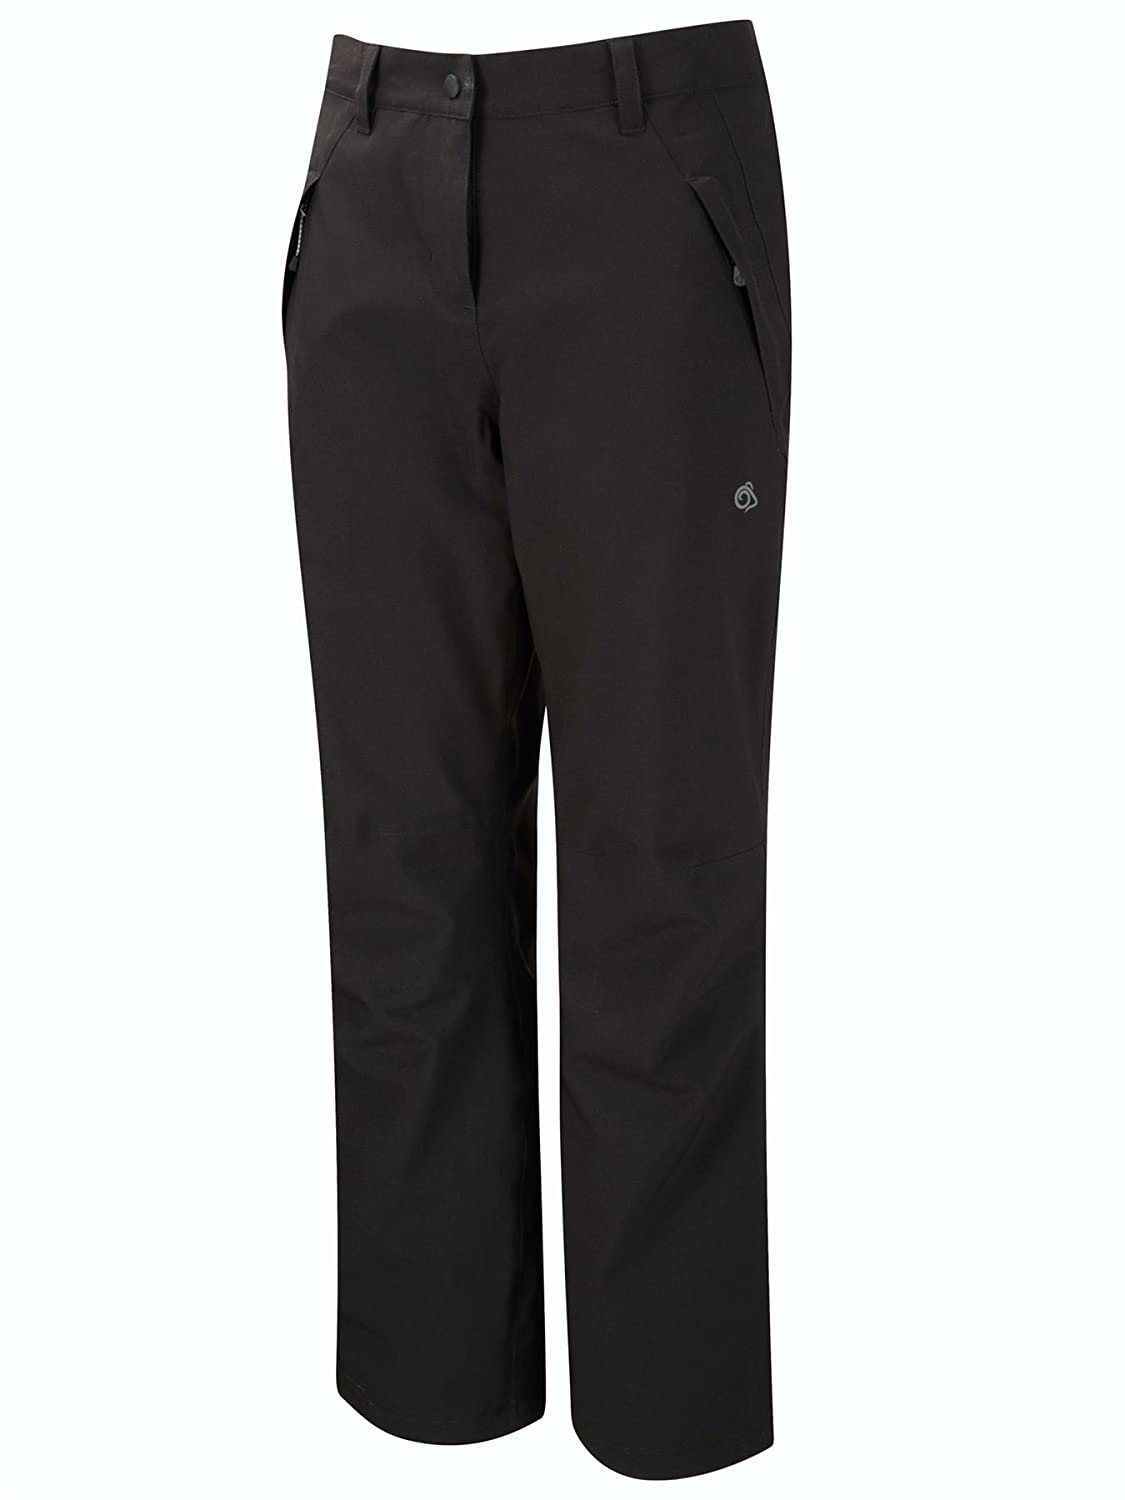 CRAGHOPPERS LADIES AYSGARTH WATERPROOF STRETCH LINED TROUSERS BLACK CWW1075